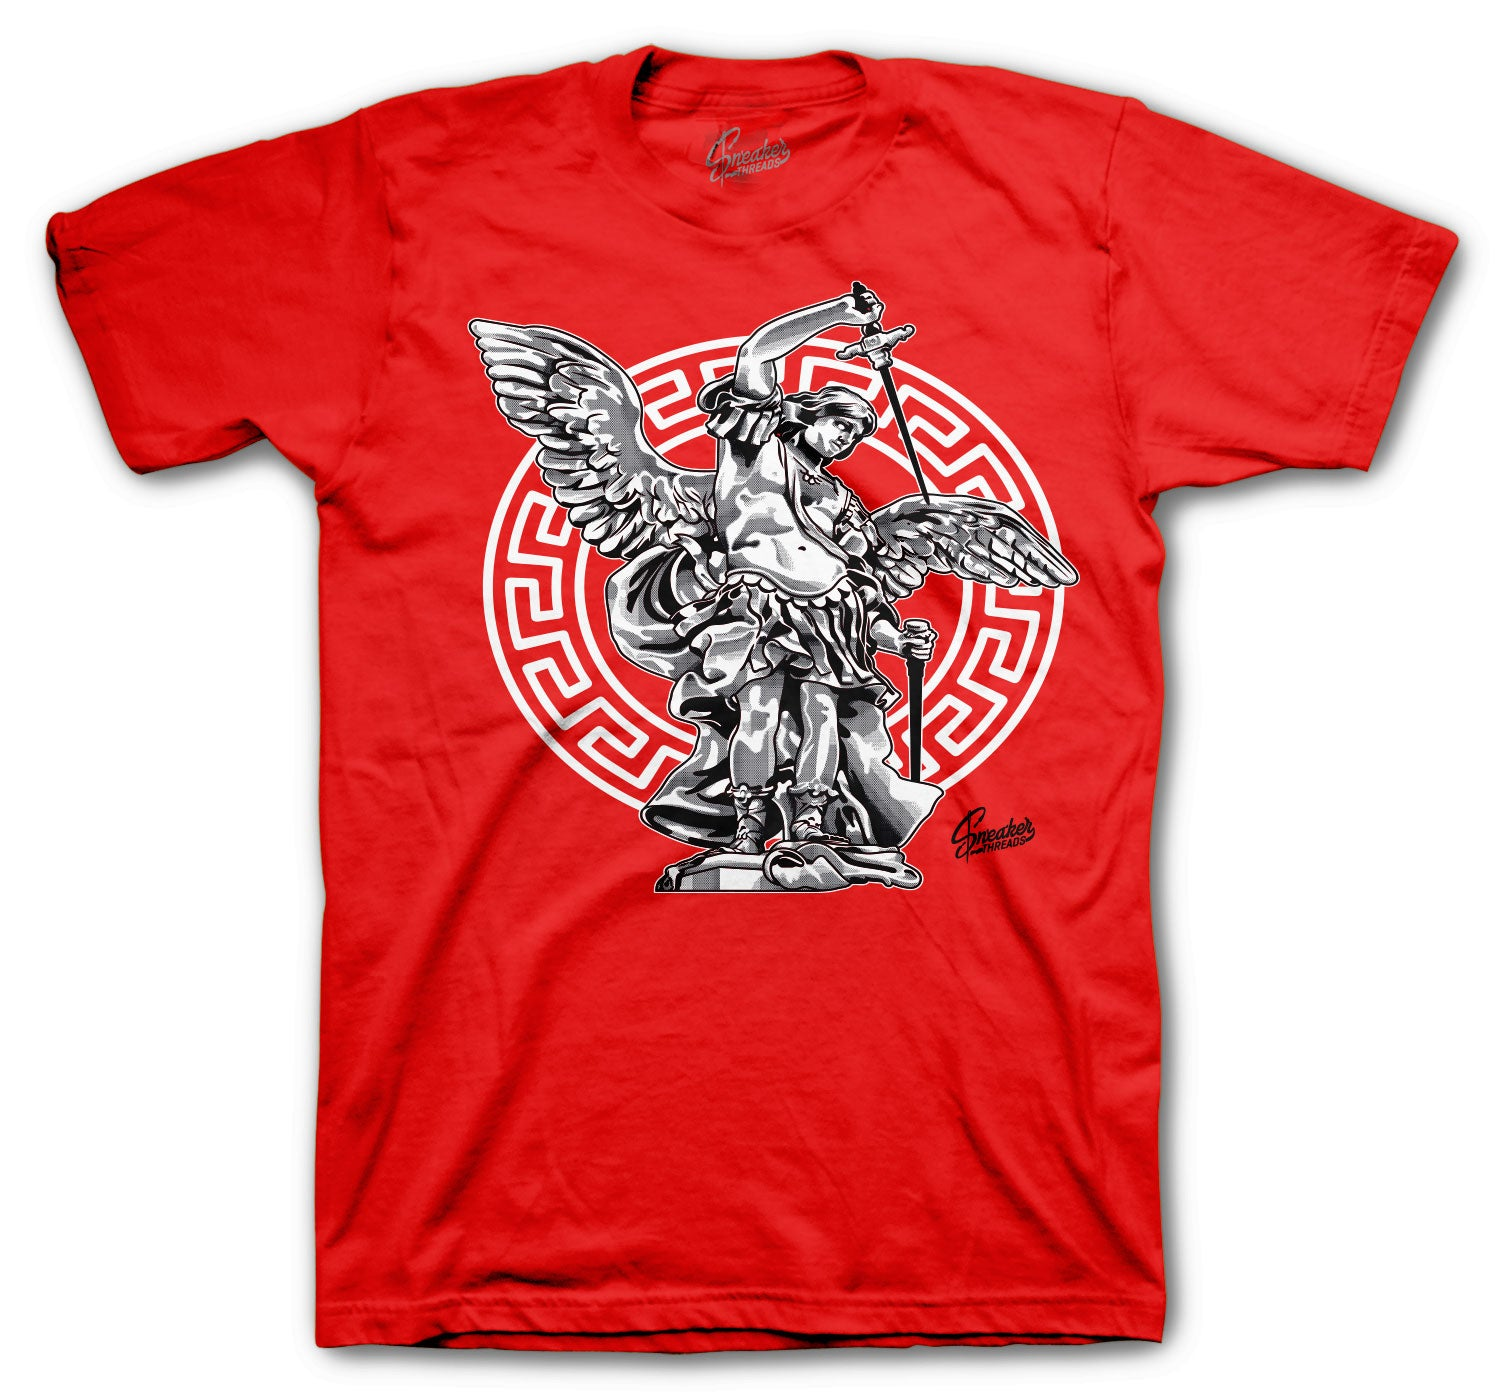 Jordan 12 Super Bowl Shirt - St. Michael - Red